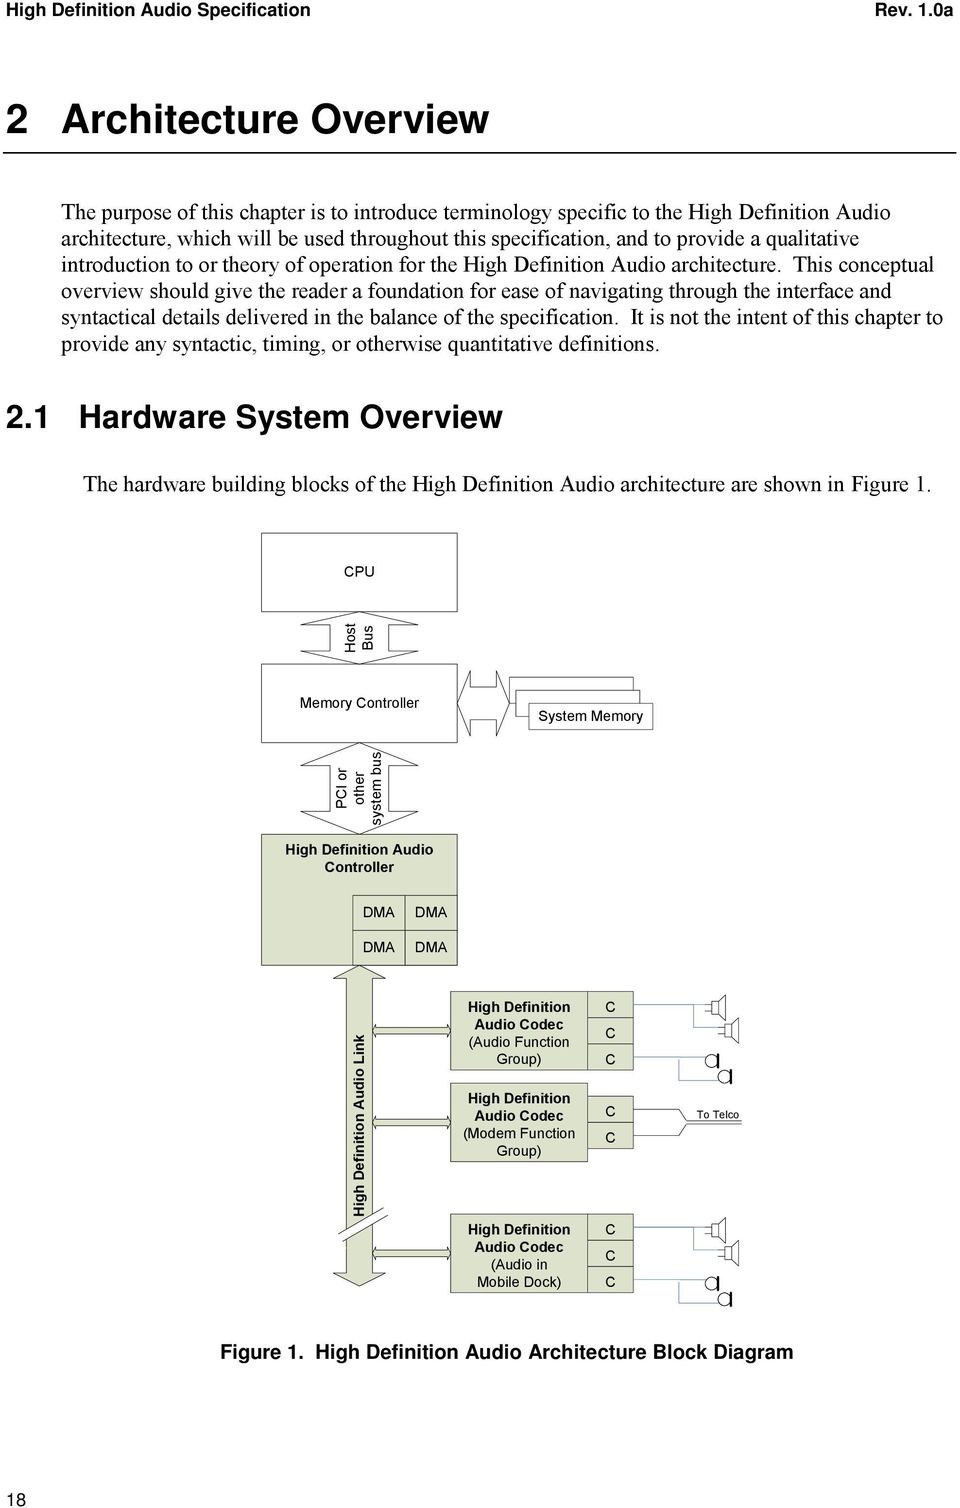 High Definition Audio Specification Revision 1 0a  June 17, PDF